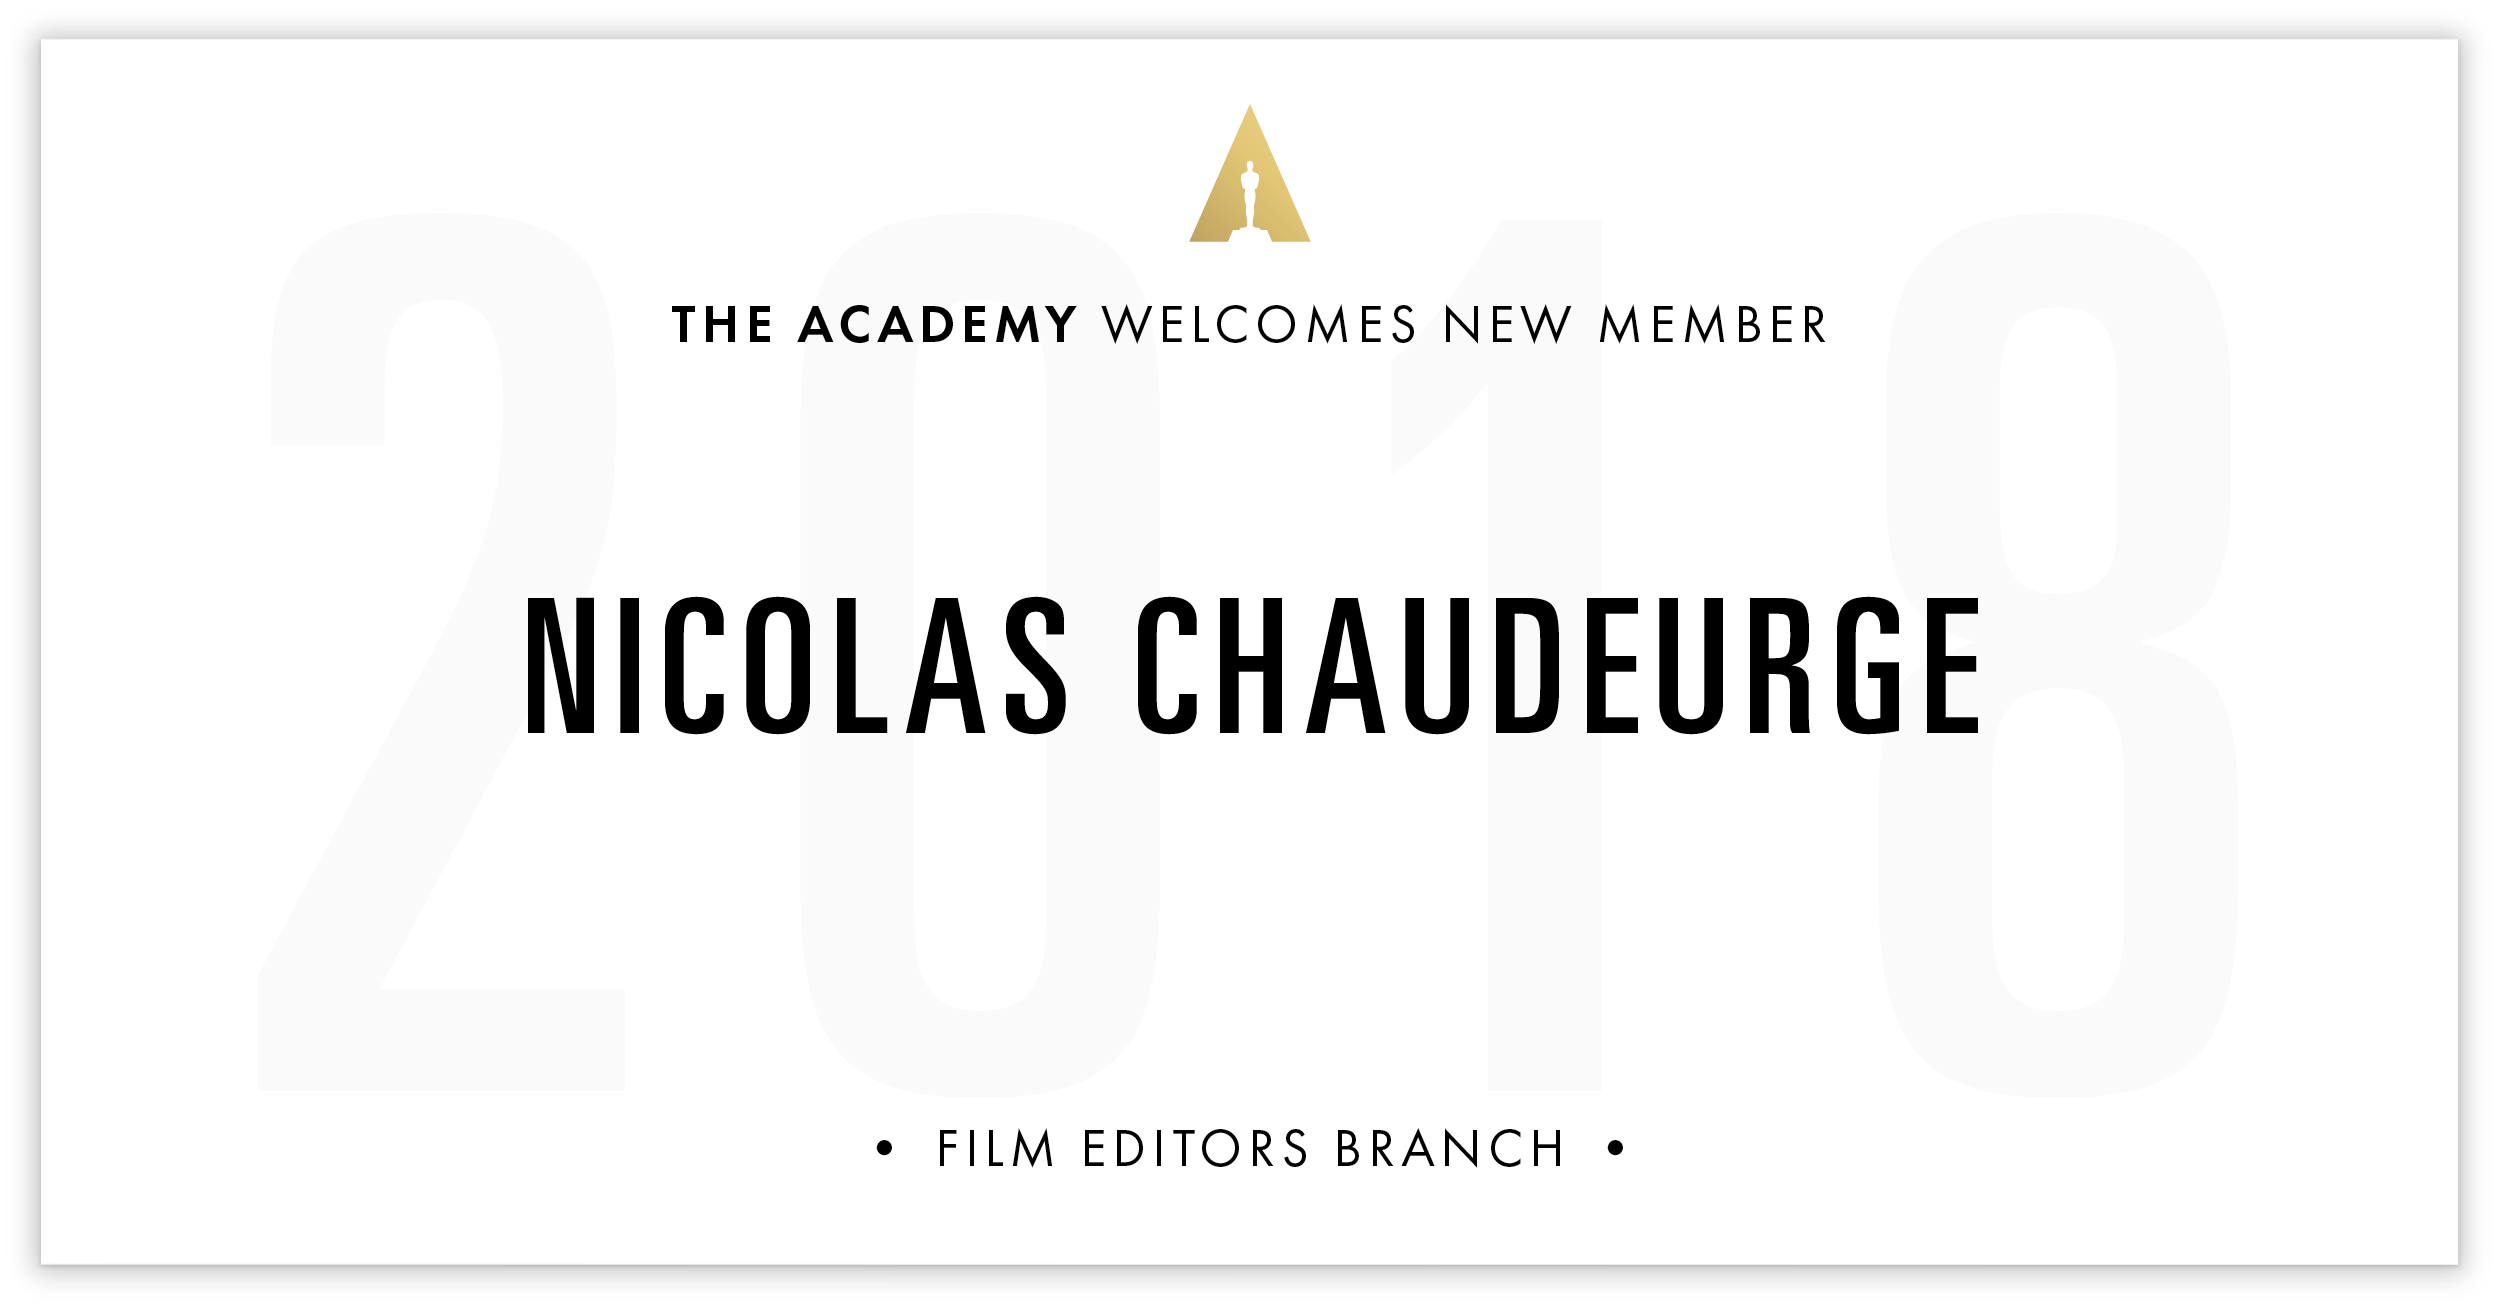 Nicolas Chaudeurge is invited!